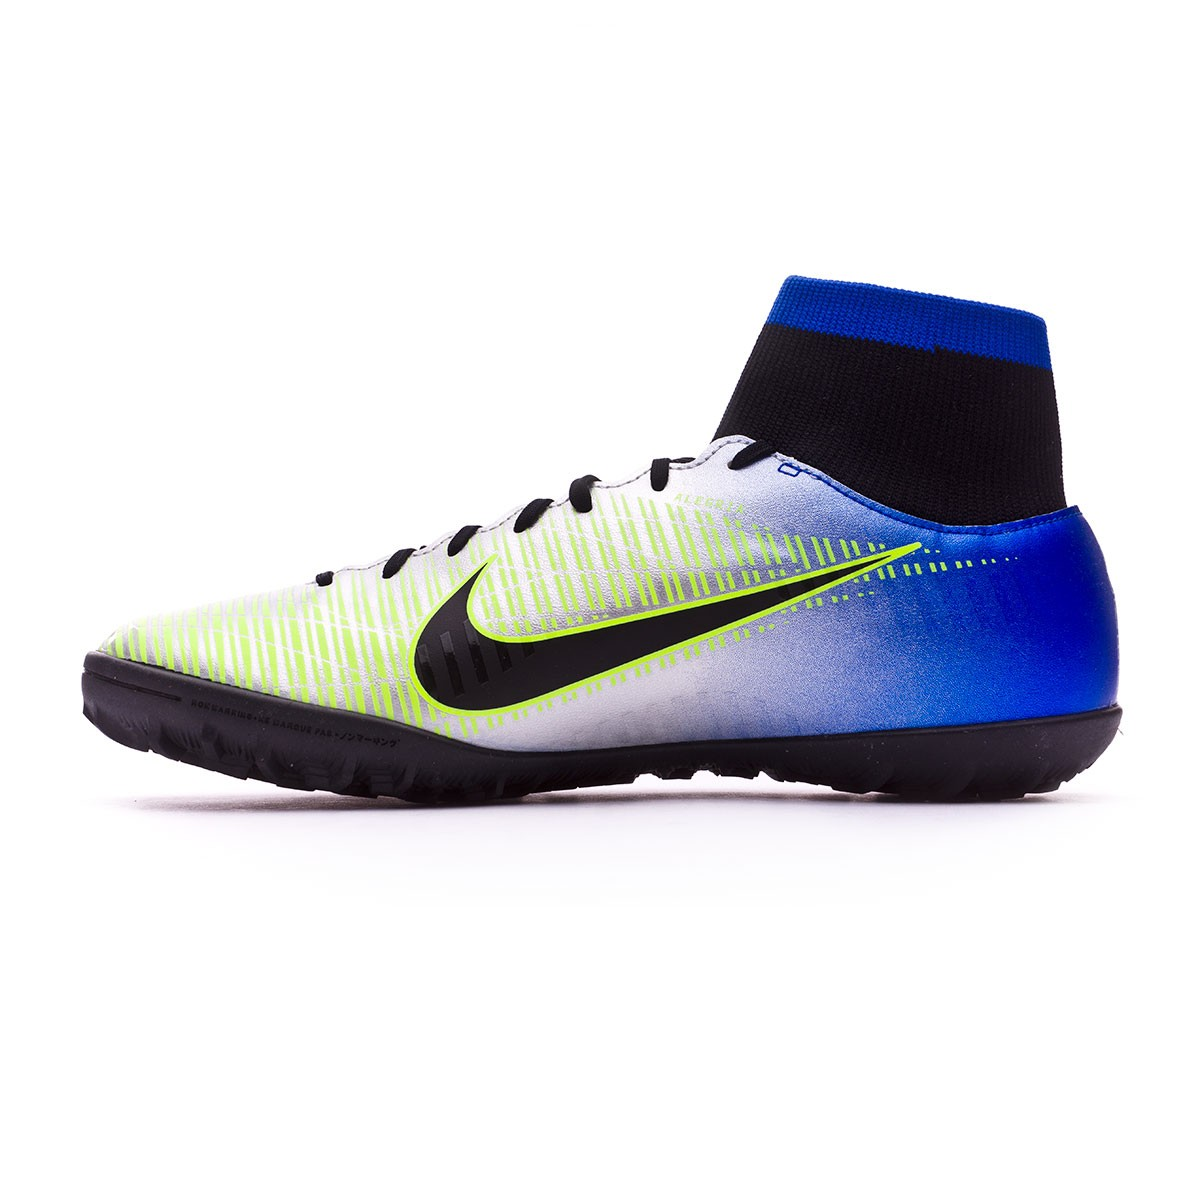 83fa20071e5 Football Boot Nike MercurialX Victory VI DF Turf Neymar Racer  blue-Black-Chrome-Volt - Tienda de fútbol Fútbol Emotion